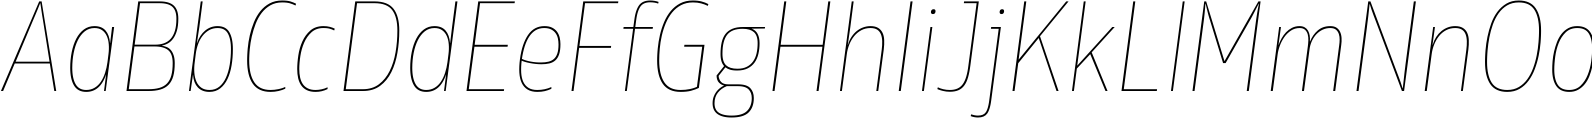 Rleud Narrow Ultra Light Italic Font